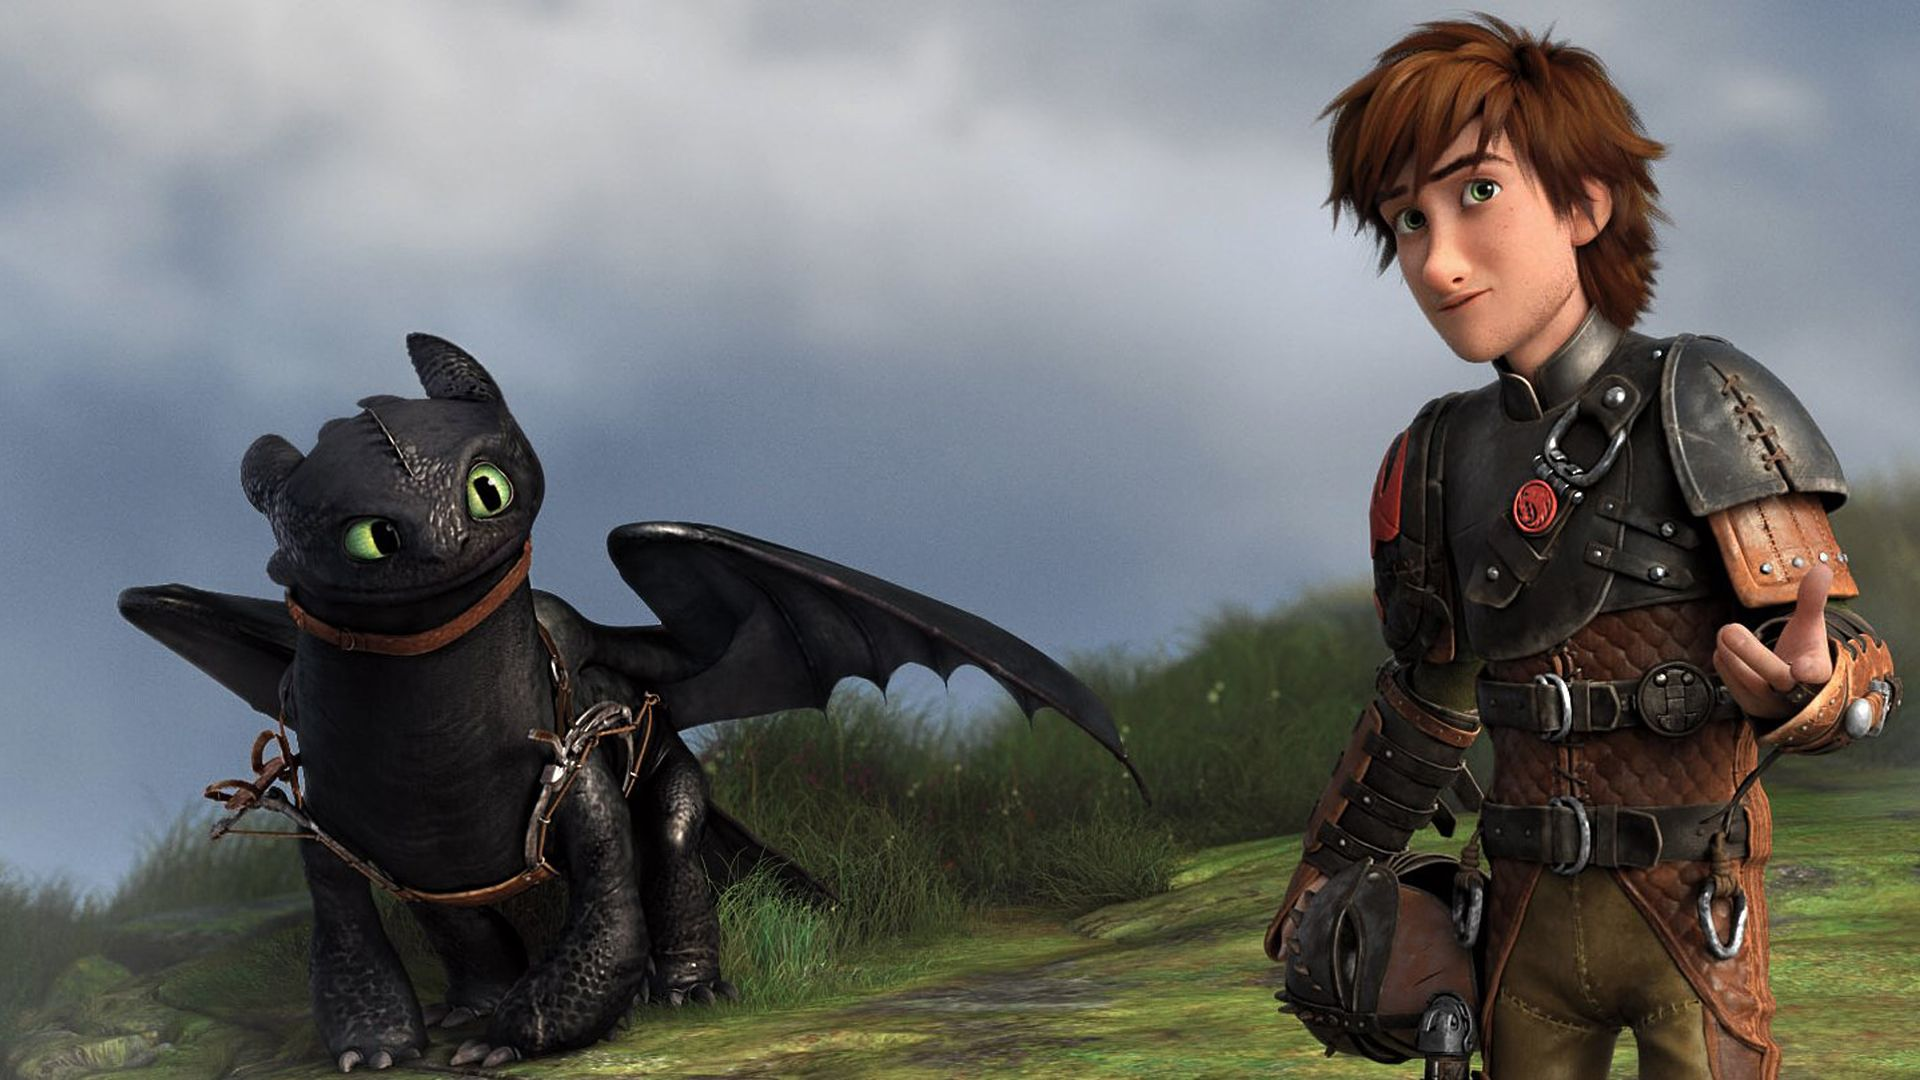 Hd How To Train Your Dragon 2 4k Picture